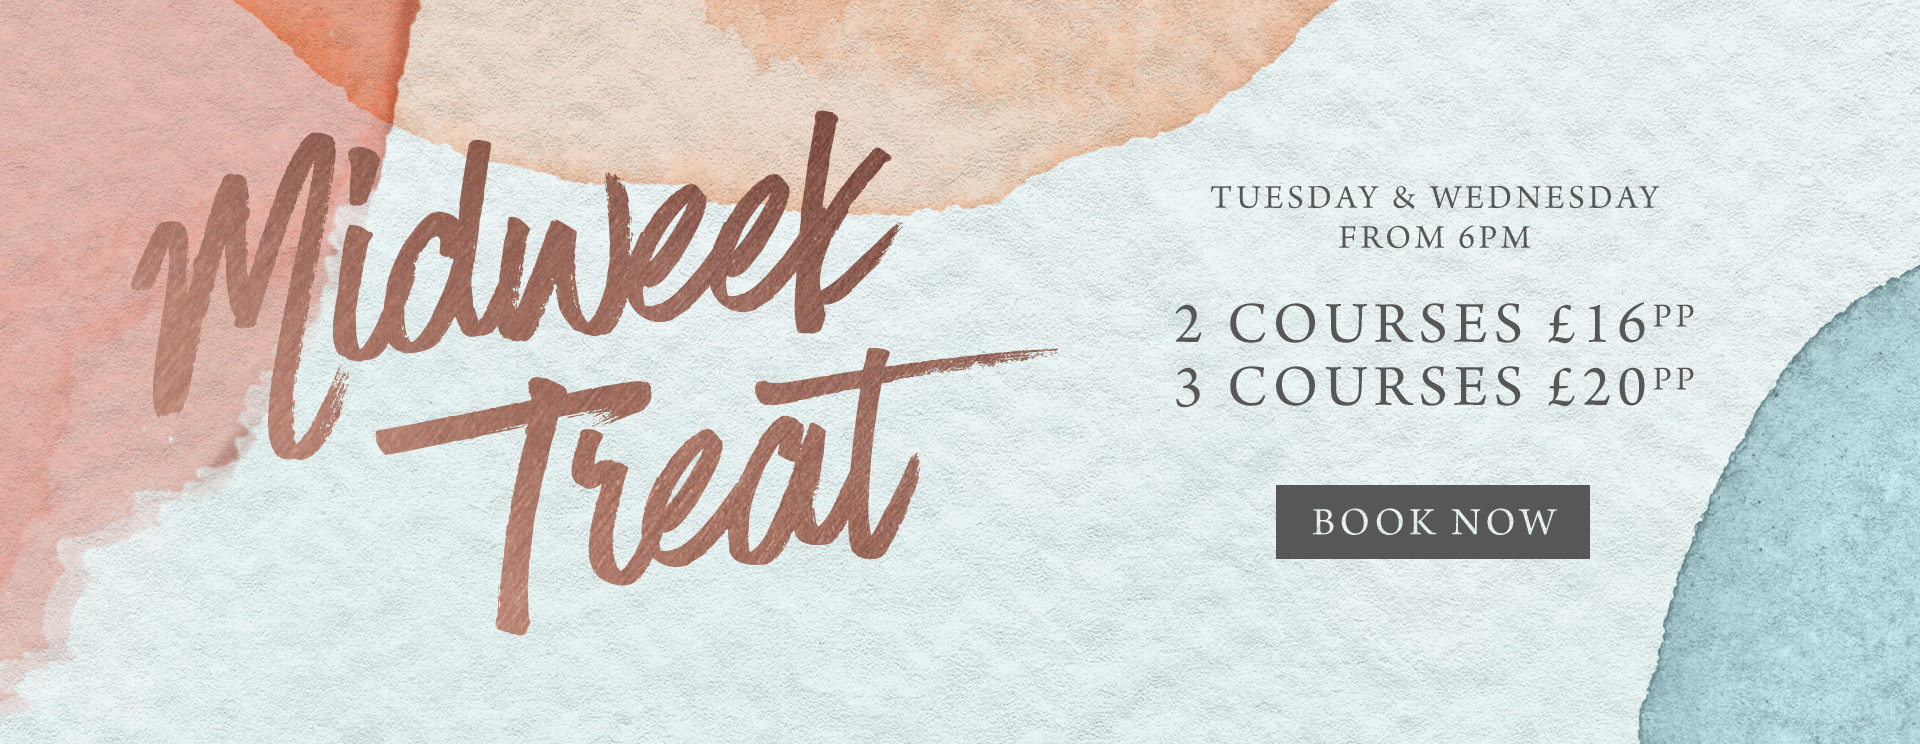 Midweek treat at The White Swan - Book now